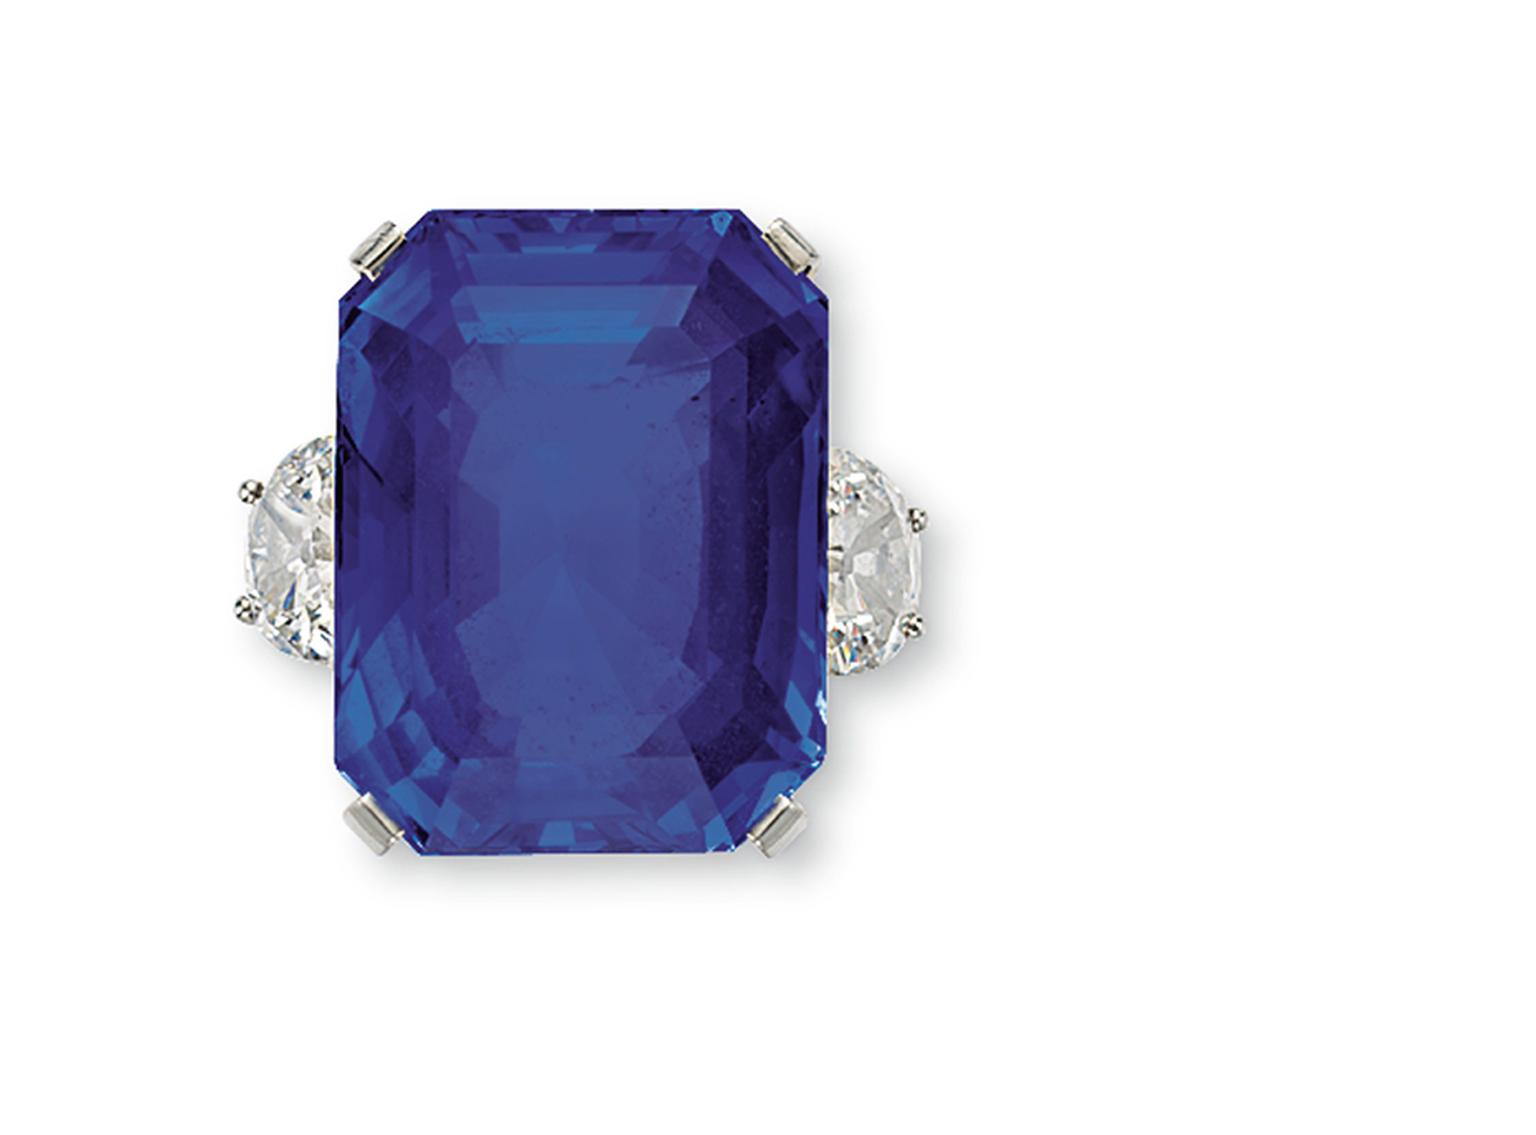 Christie's New York sold the 63.65ct Ceylon sapphire and diamond ring by Tiffany & Co. for $587,000.